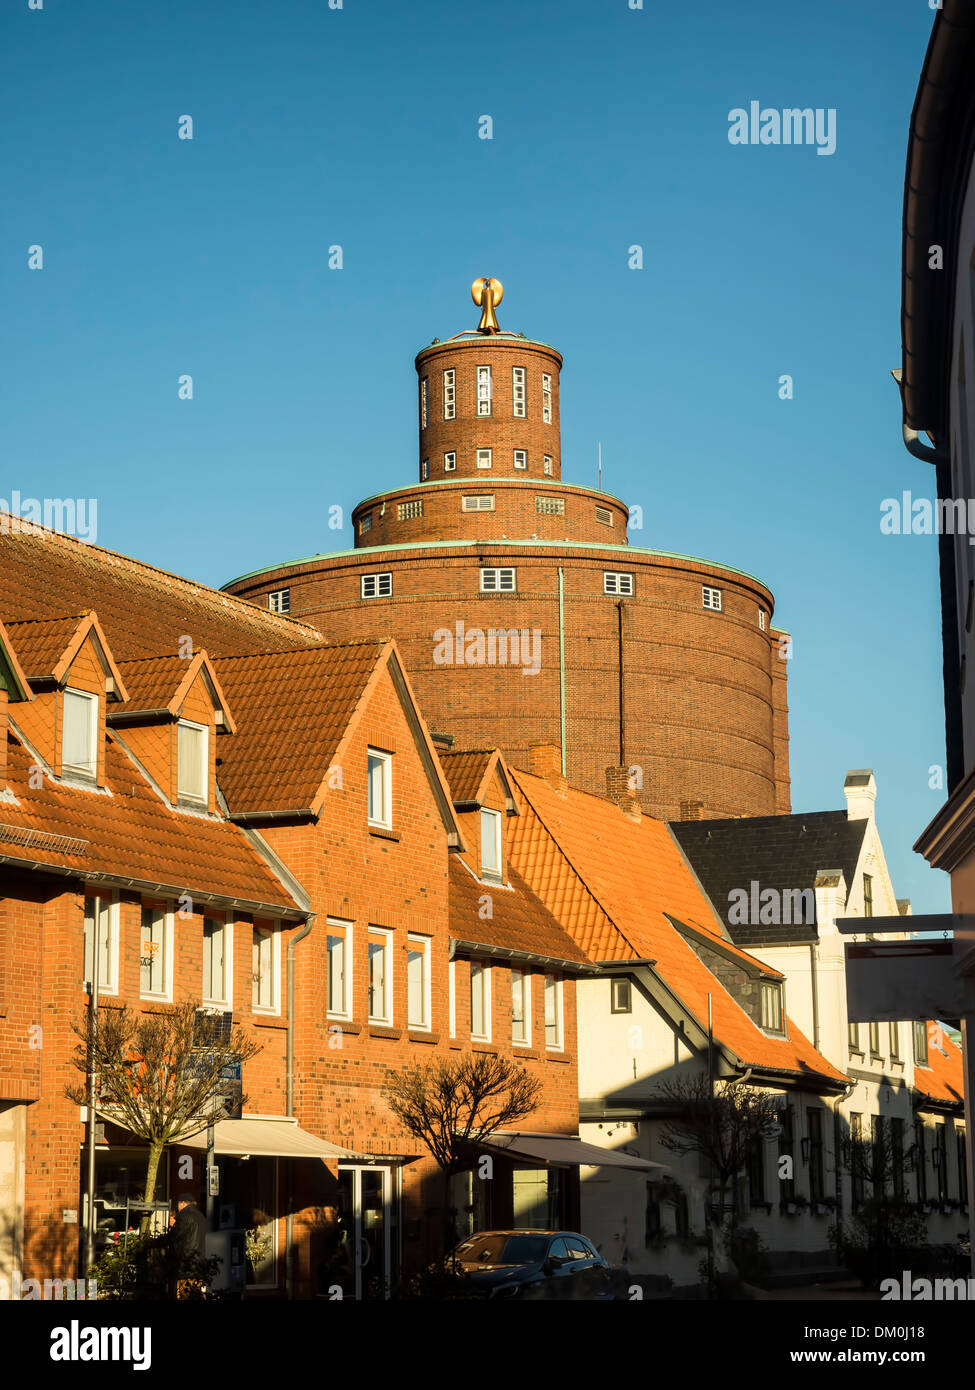 Eckernfoerde in north Germany, the old streets - Stock Image